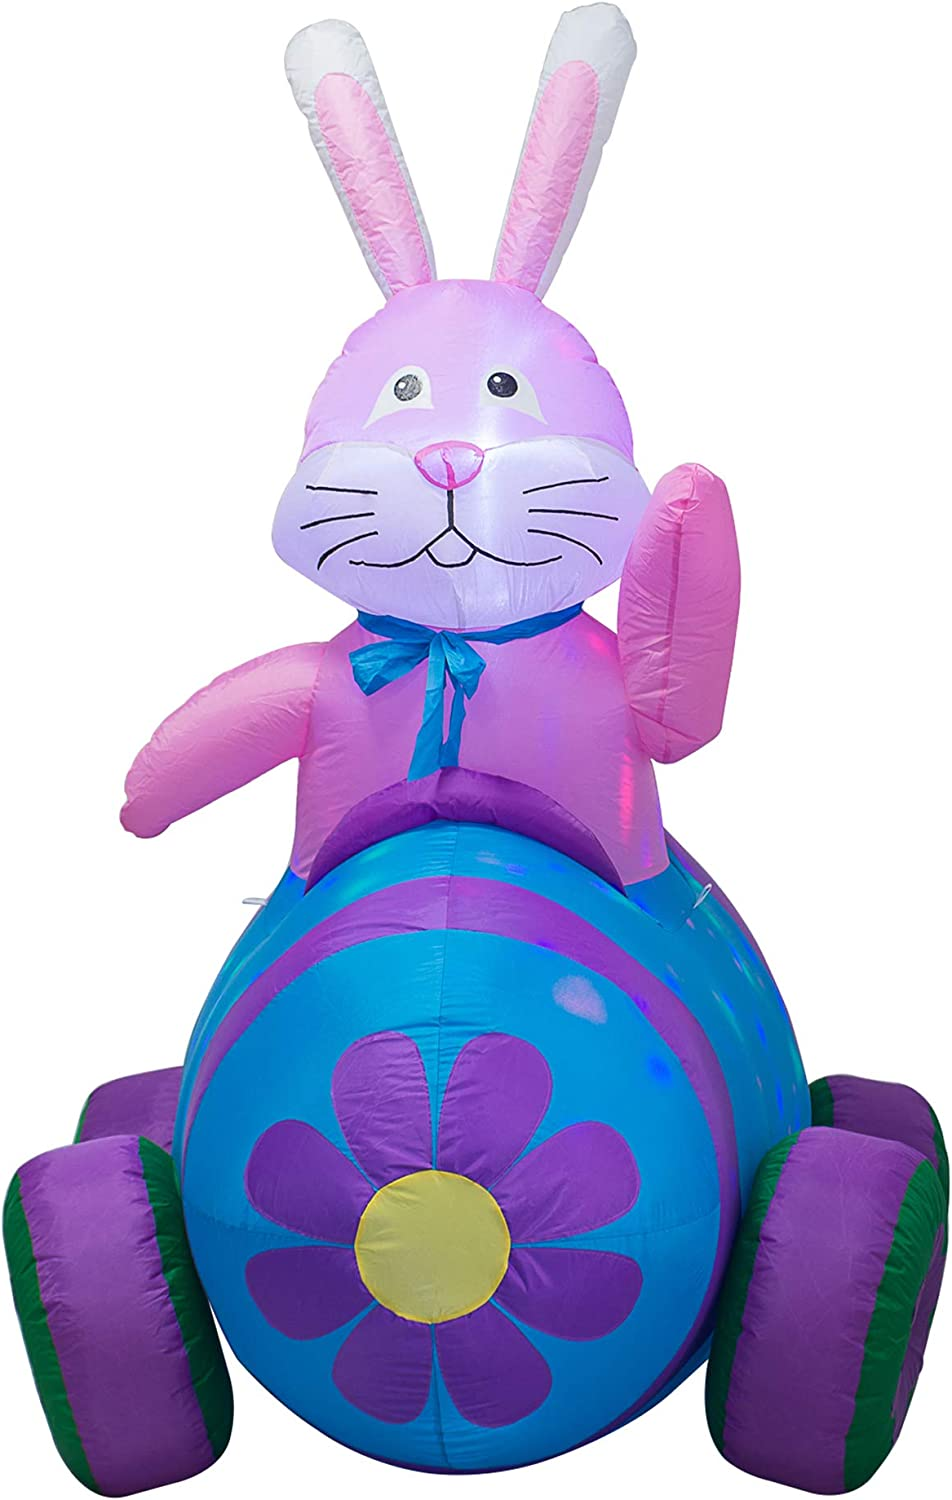 Max 63% OFF Import AJY 6 Feet Happy Easter Bunny Inflatable Ind Driving Blow Car Up